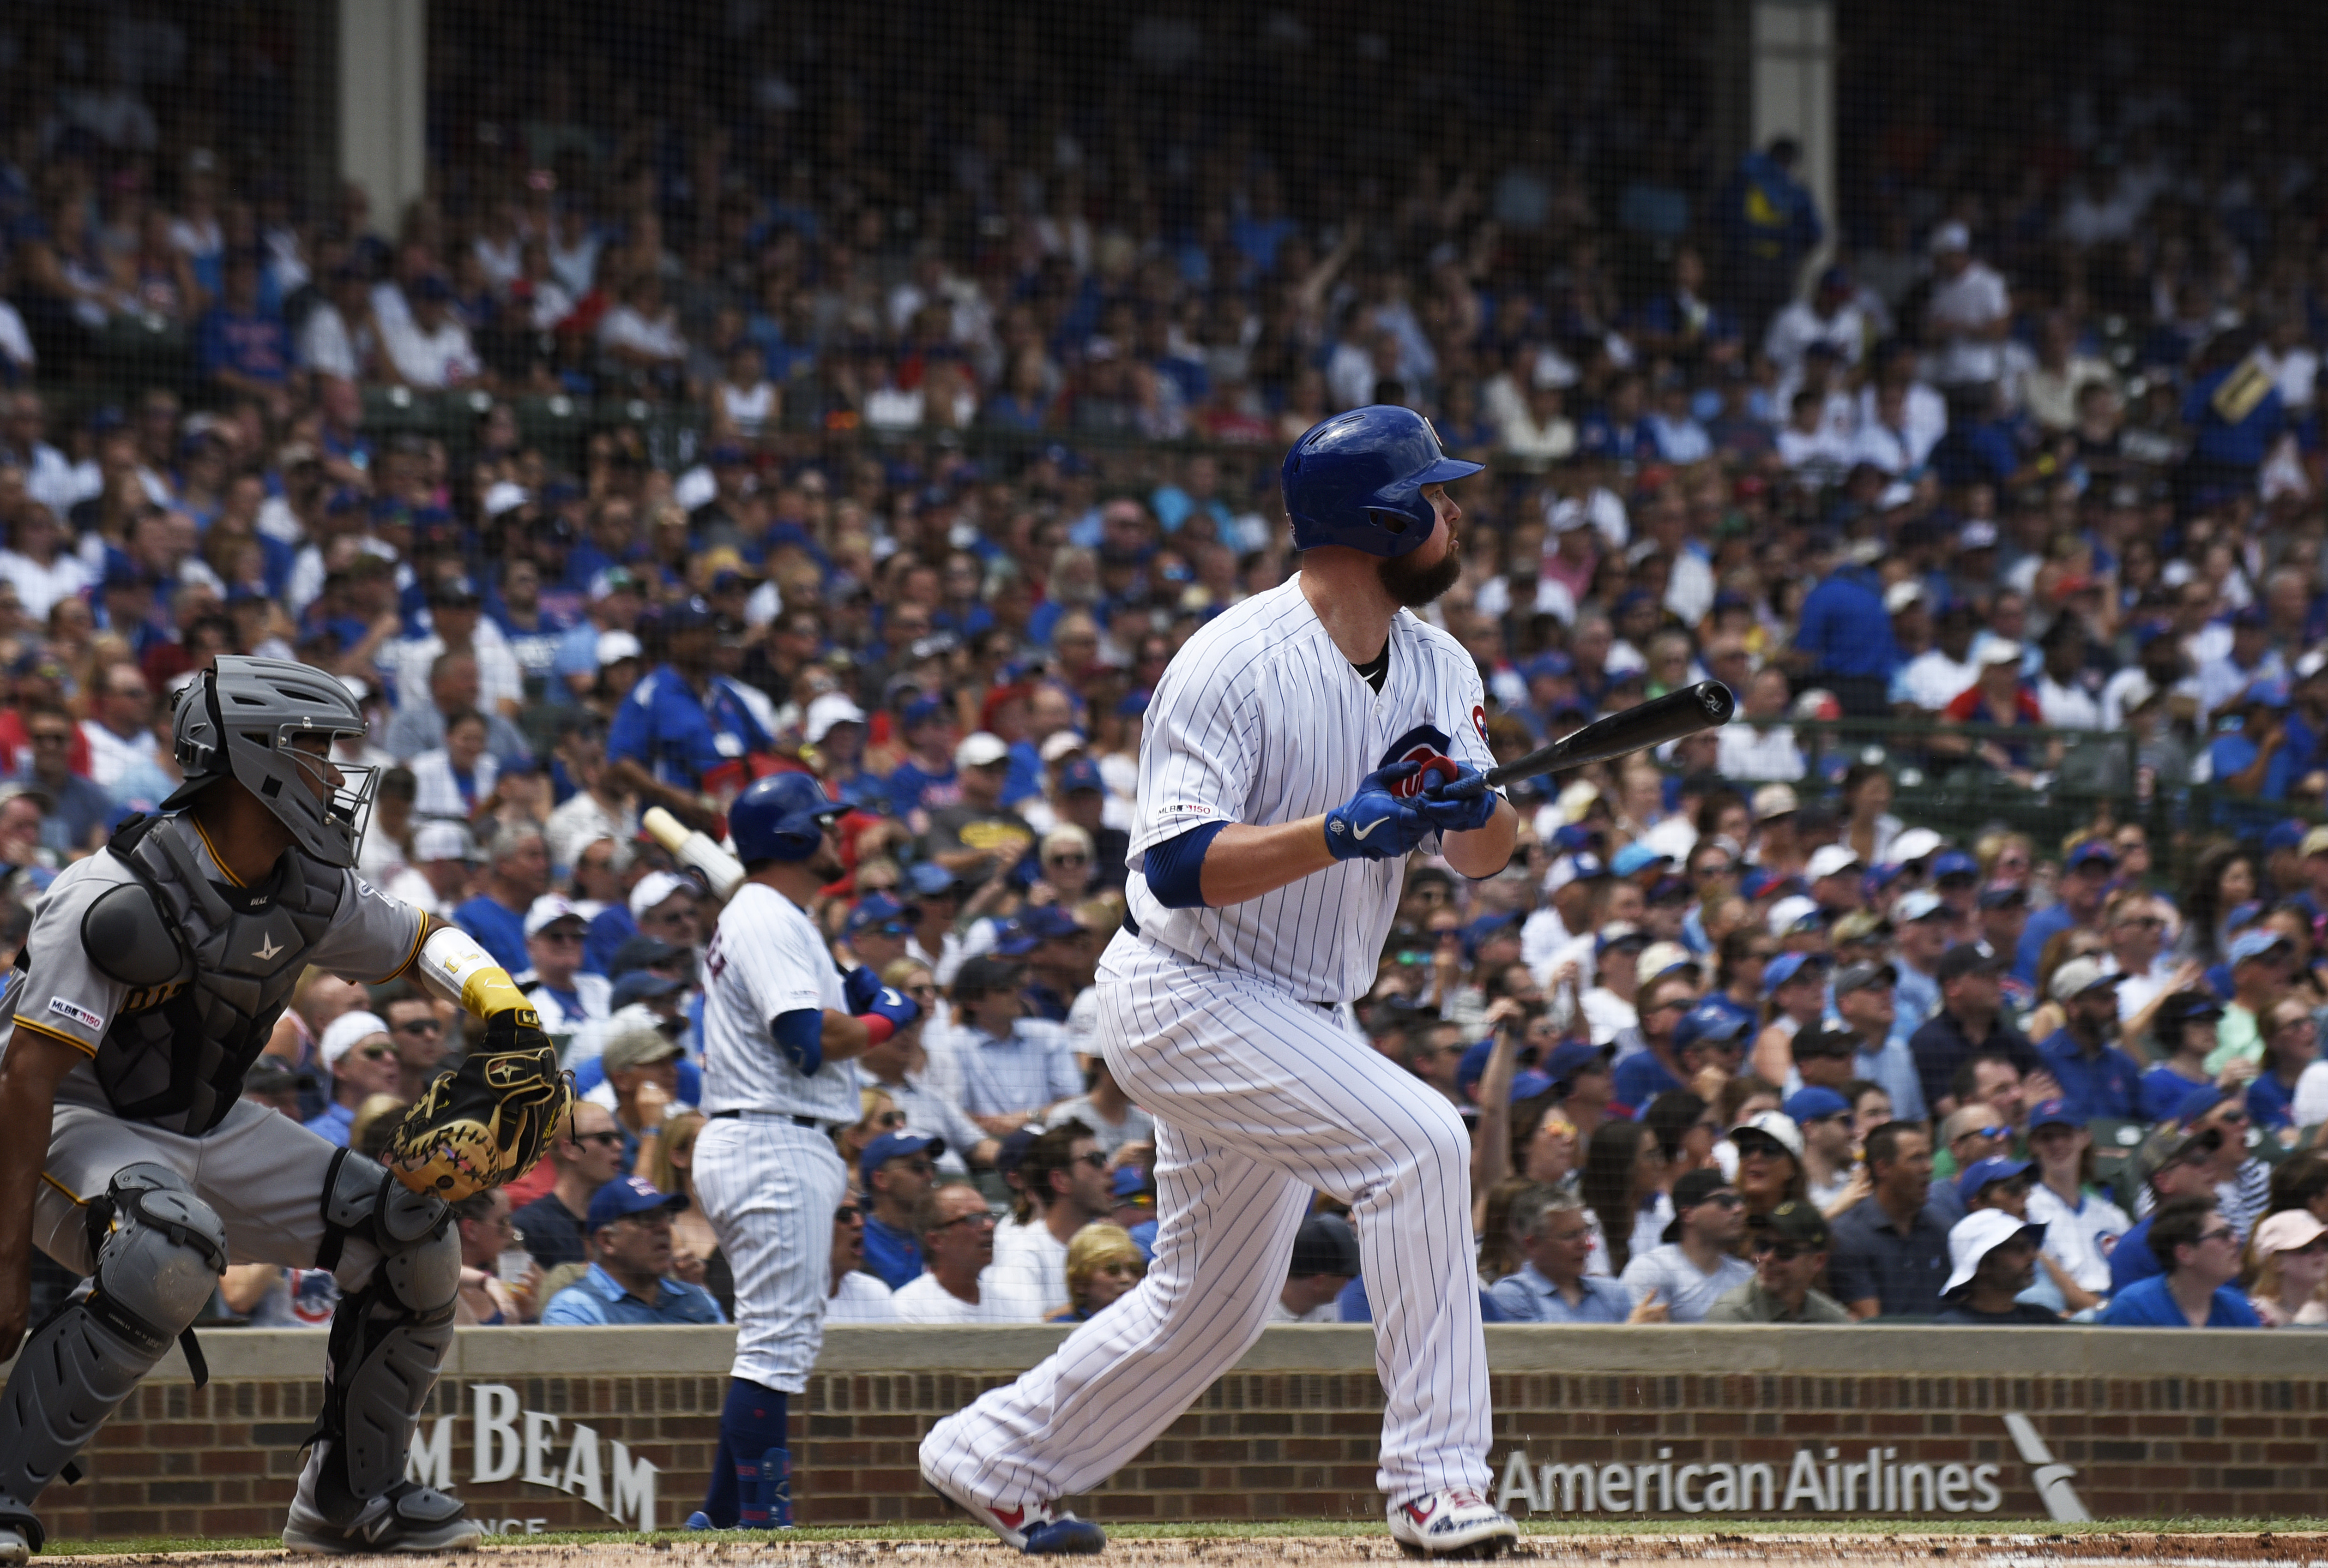 Lester homers, drives in 3, pitches Cubs past Pirates 10-4